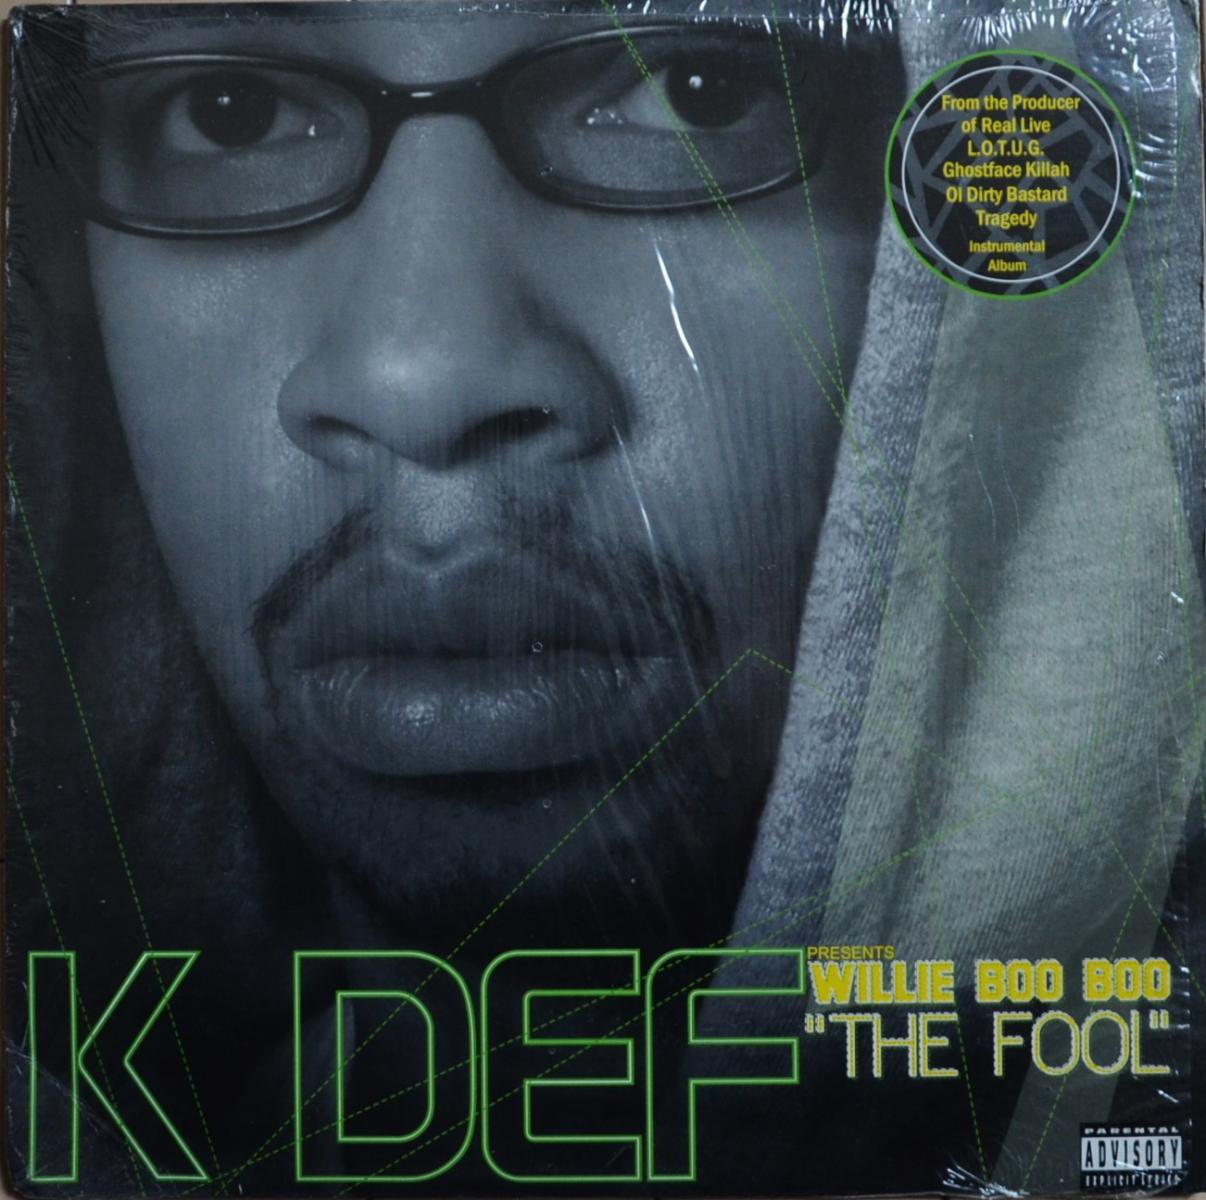 K-DEF PRESENTS WILLIE BOO BOO / THE FOOL (LP)